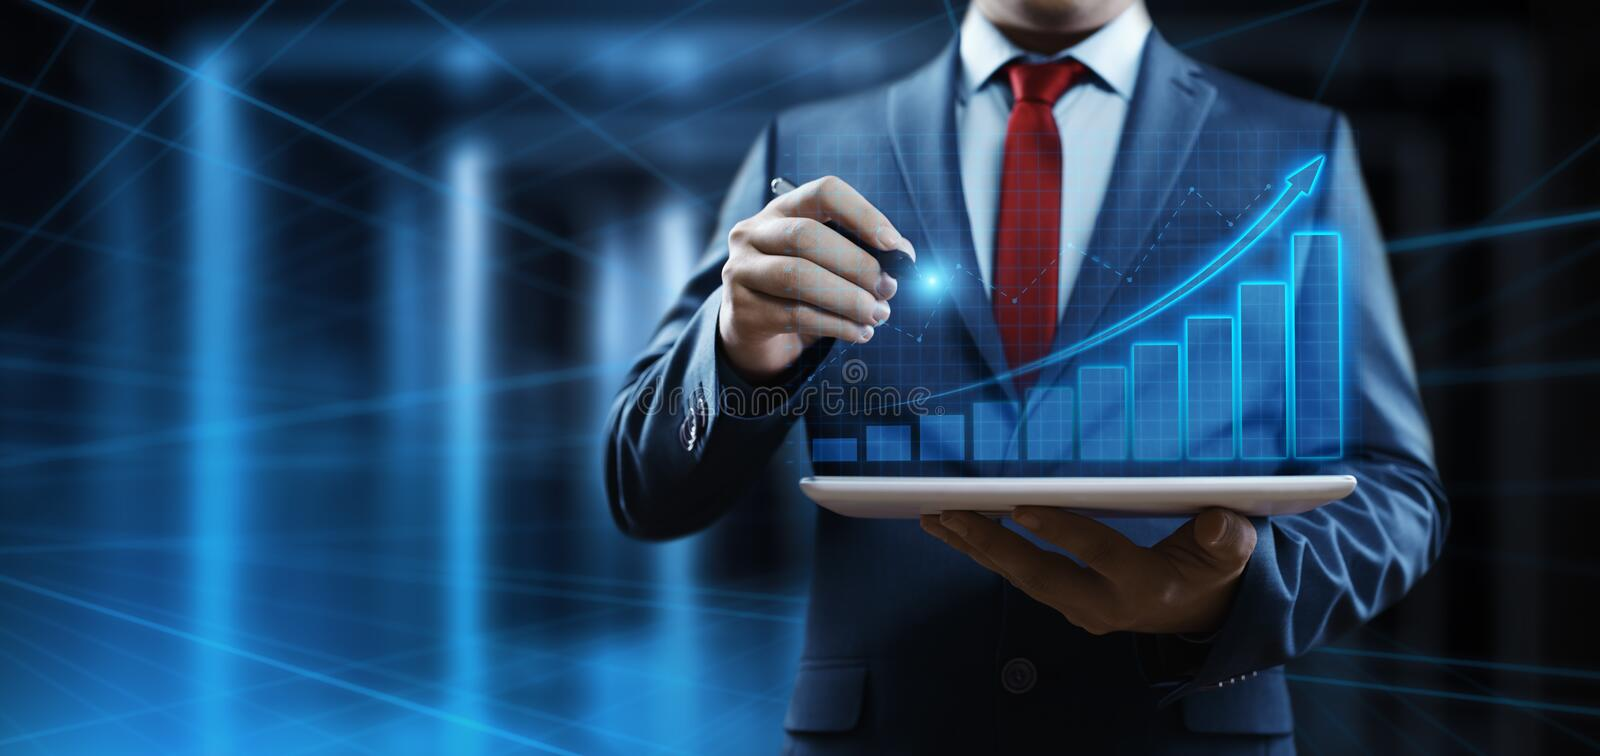 Forex investment business